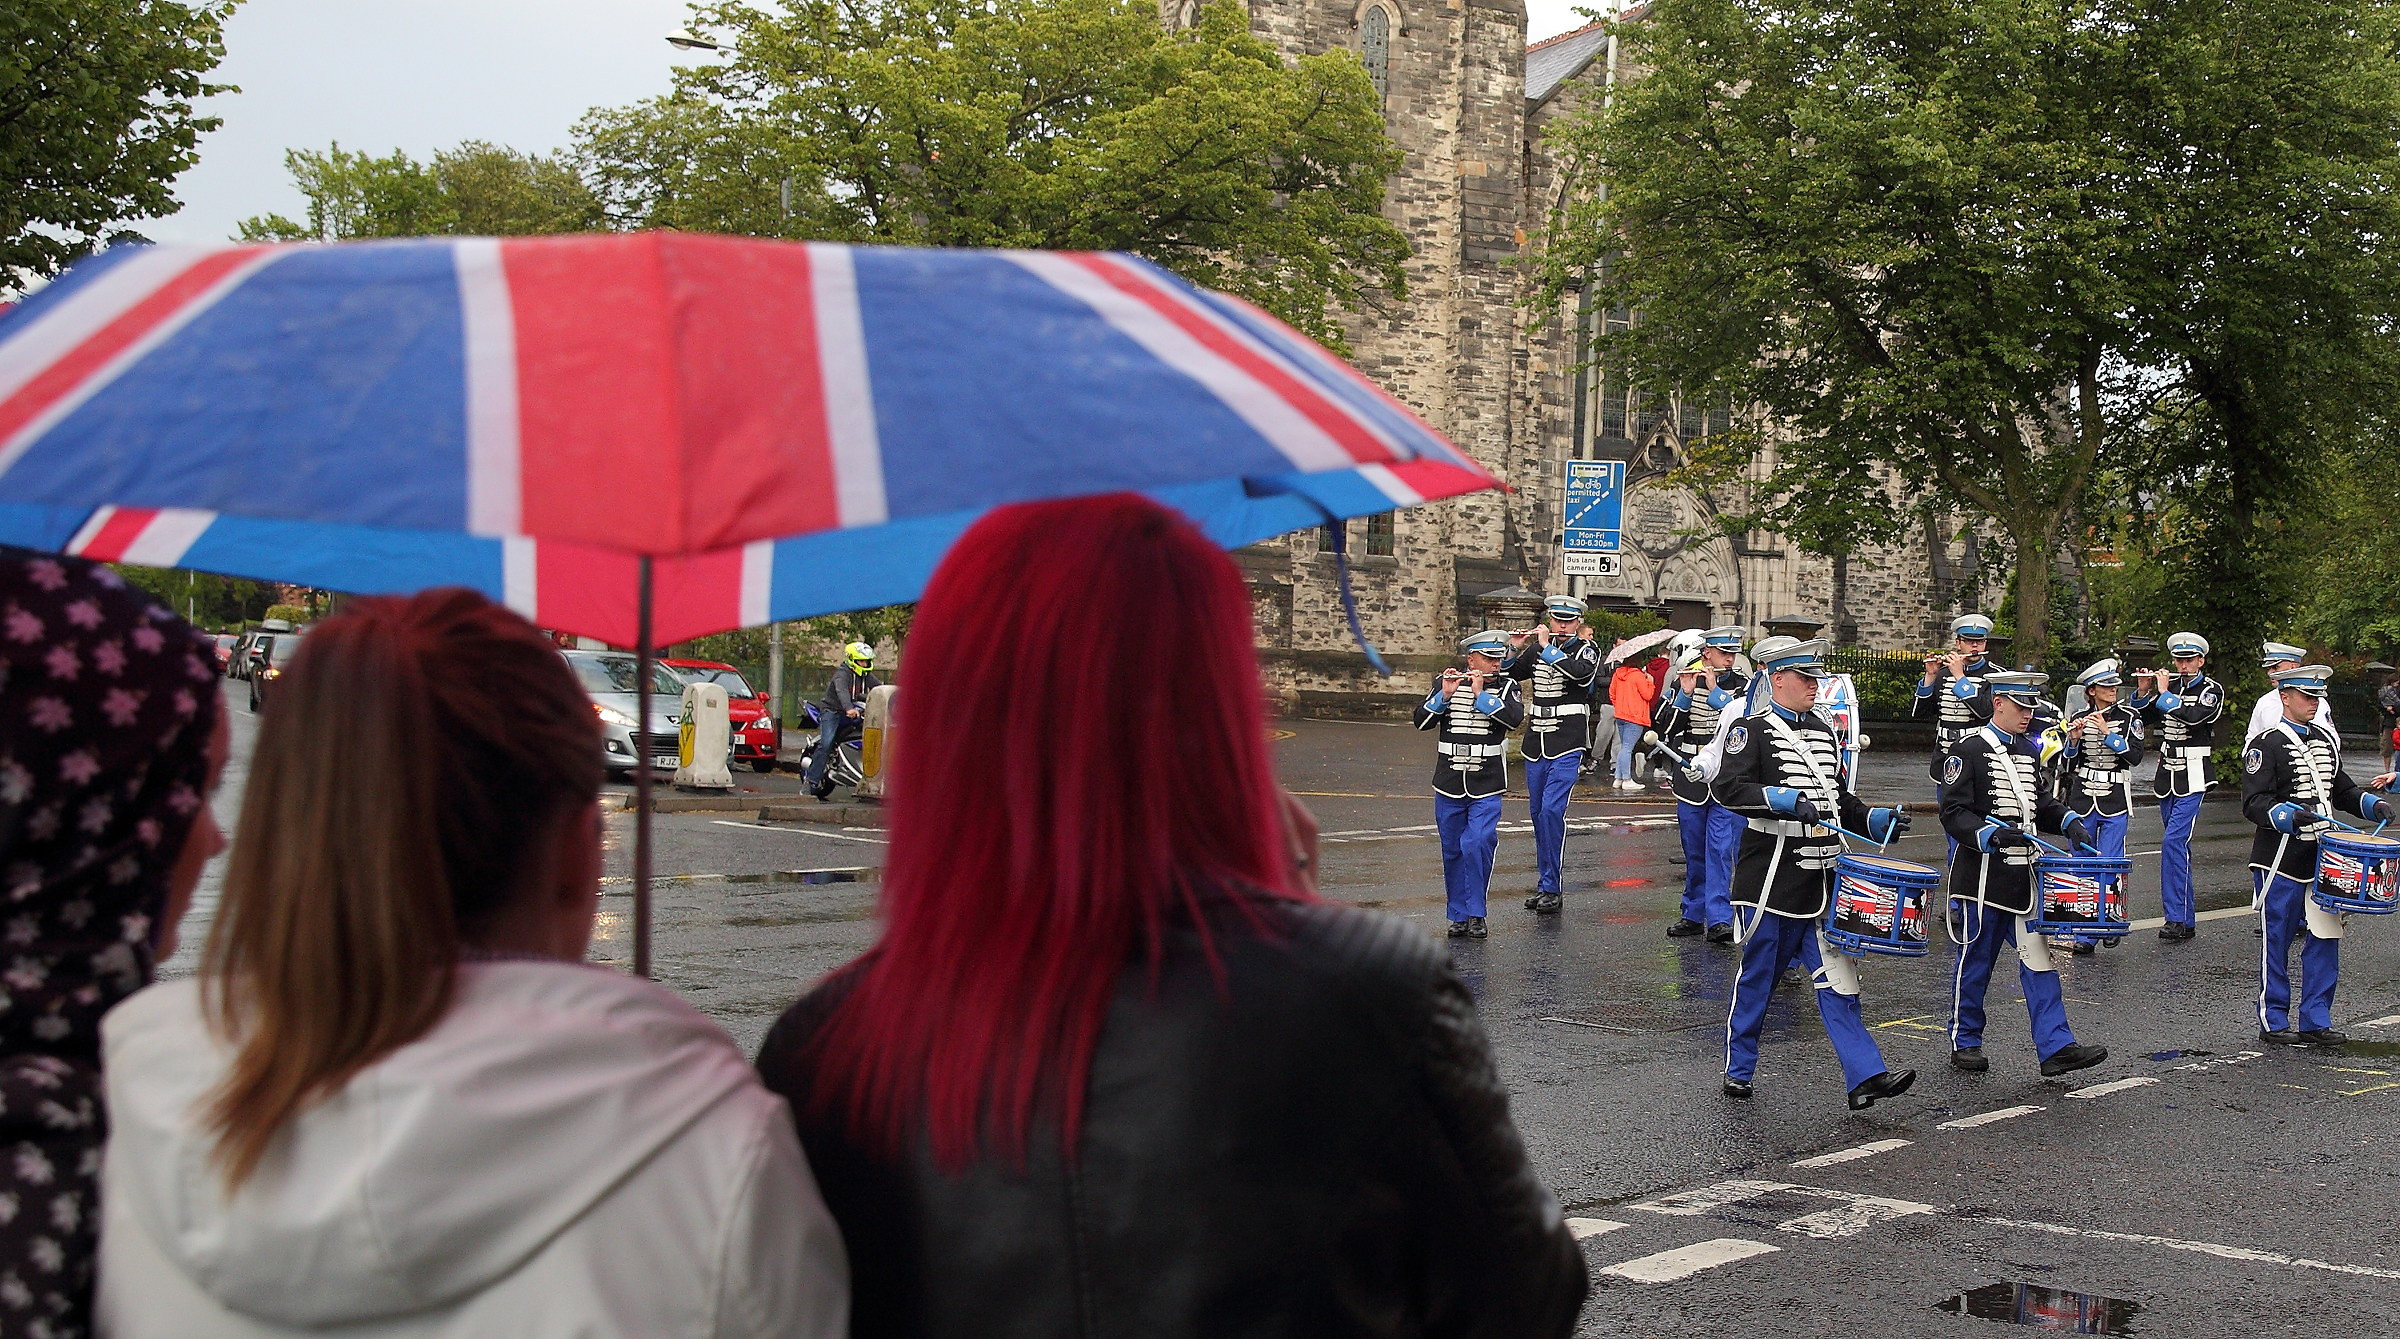 Low turnout for parade to honour UDA killers